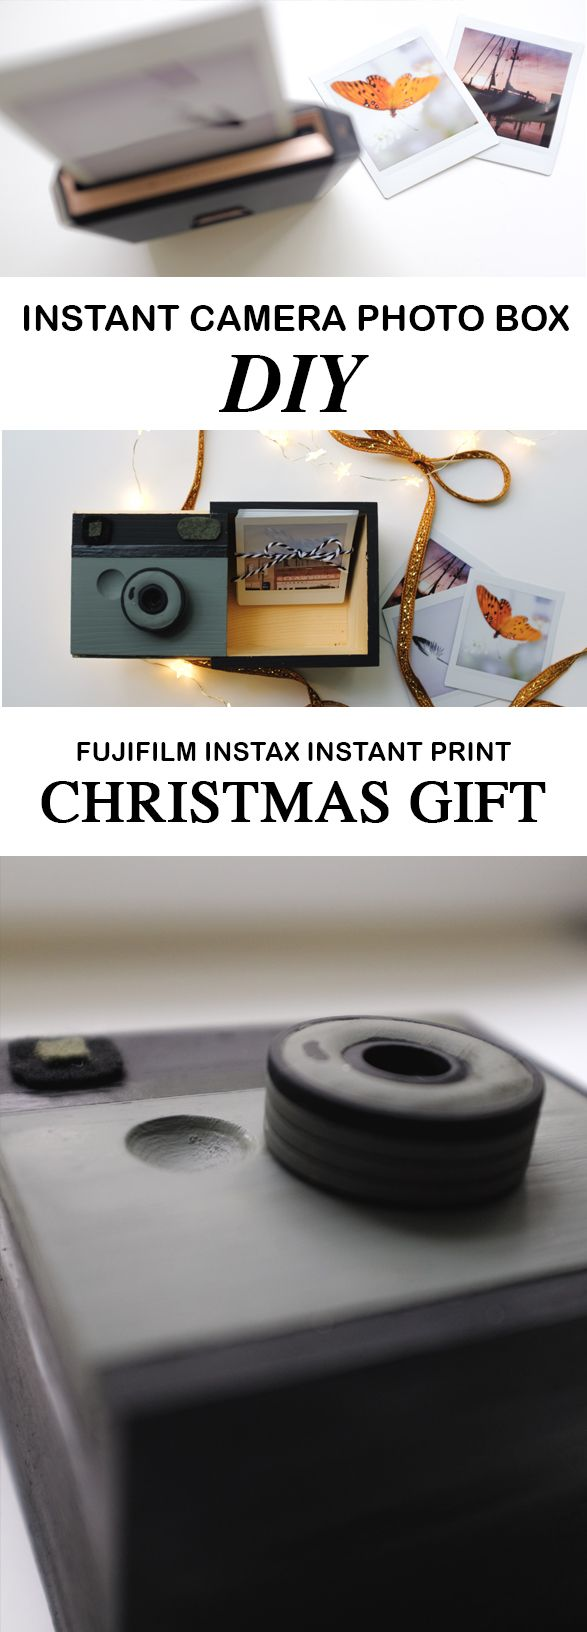 Instant camera fujifilm instax diy photo gift simply living nc